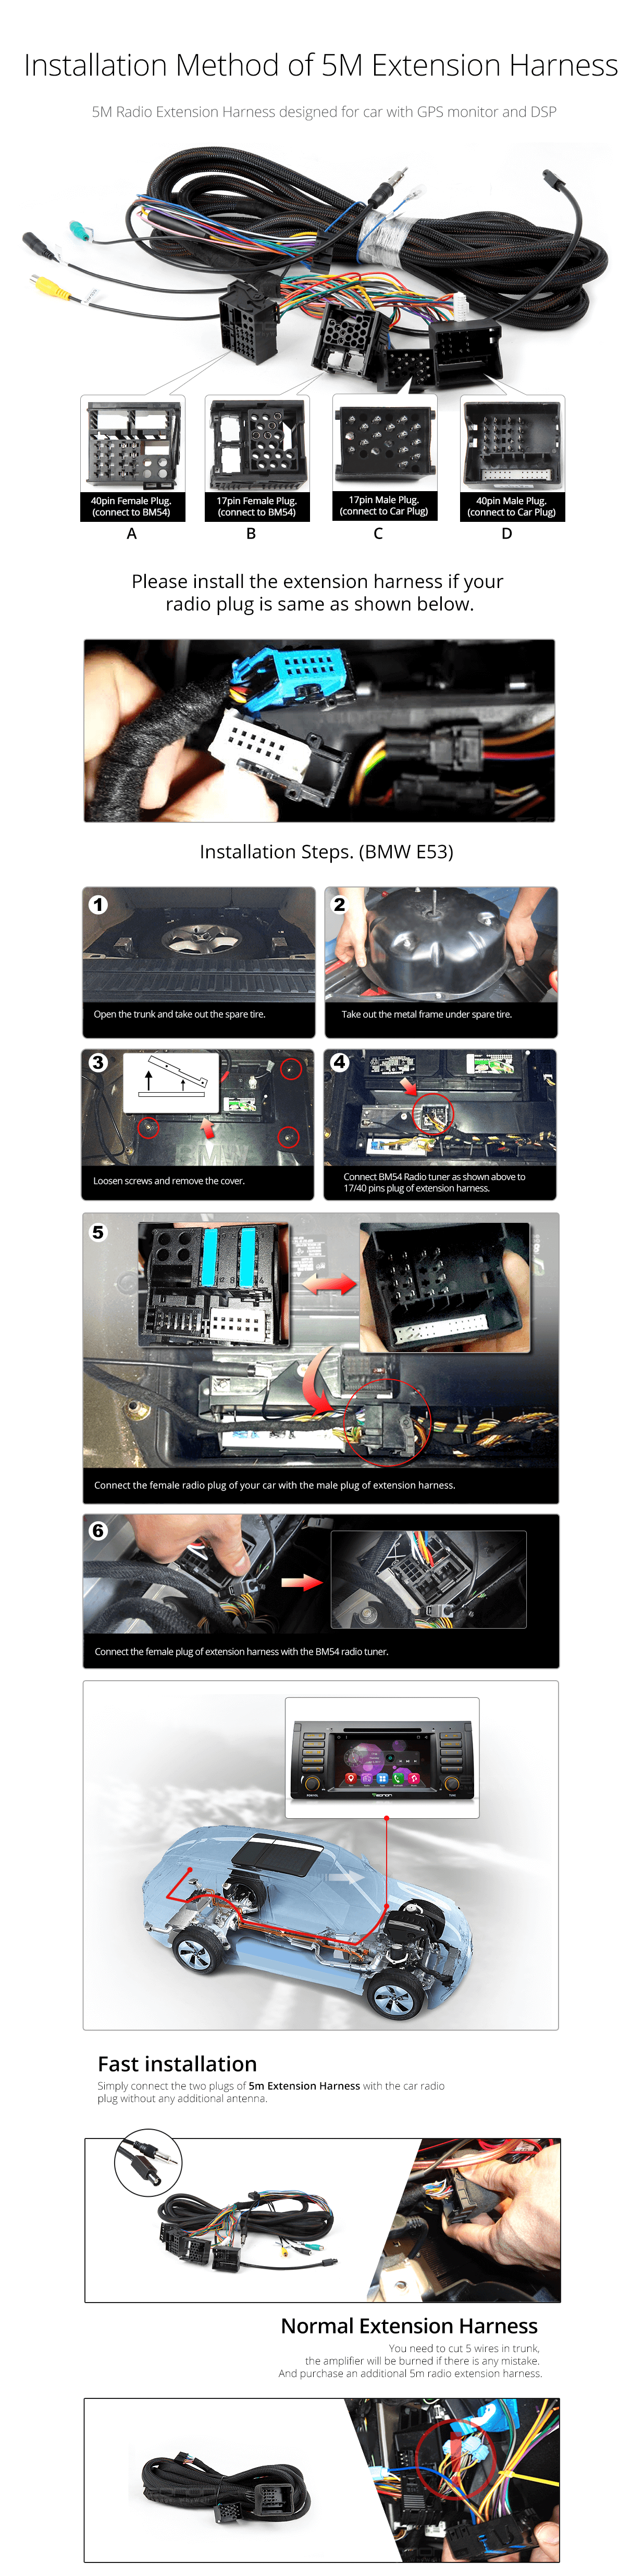 GA7166 last 1 ga7166 eonon car dvd eonon car stereo eonon car radio wiring a car stereo without a harness at bakdesigns.co